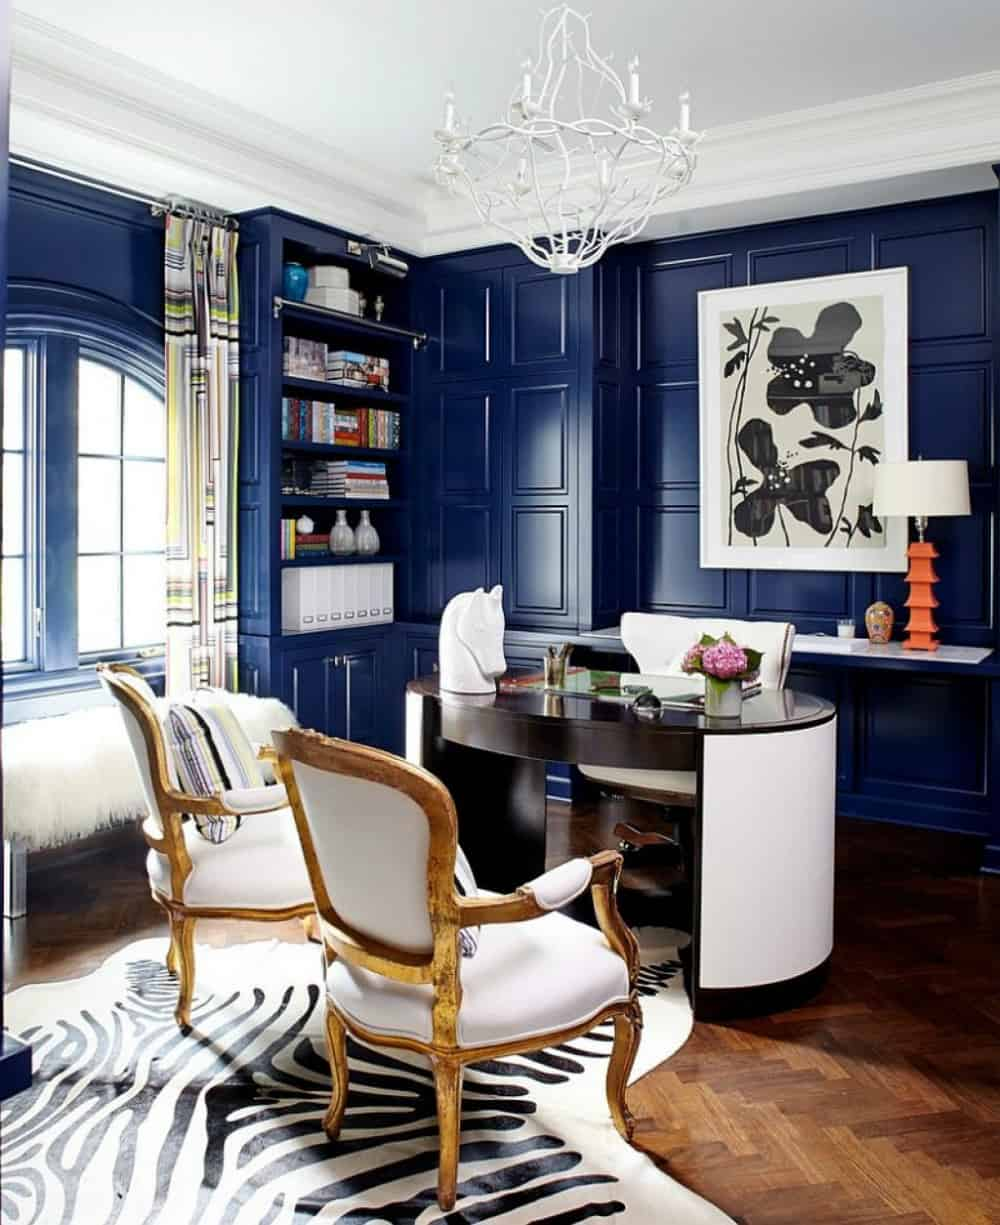 Modern home office with blue walls and wooden floors